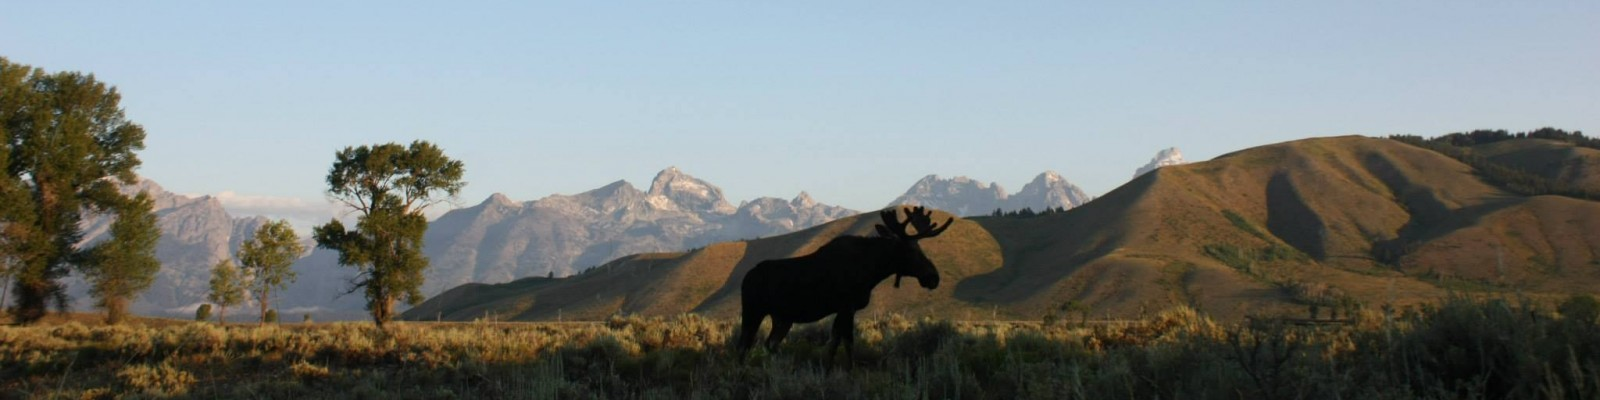 Moose near the Gros Ventre River, Grand Tetons in the background.  Photo credit Albert Li (student IFP 2013).